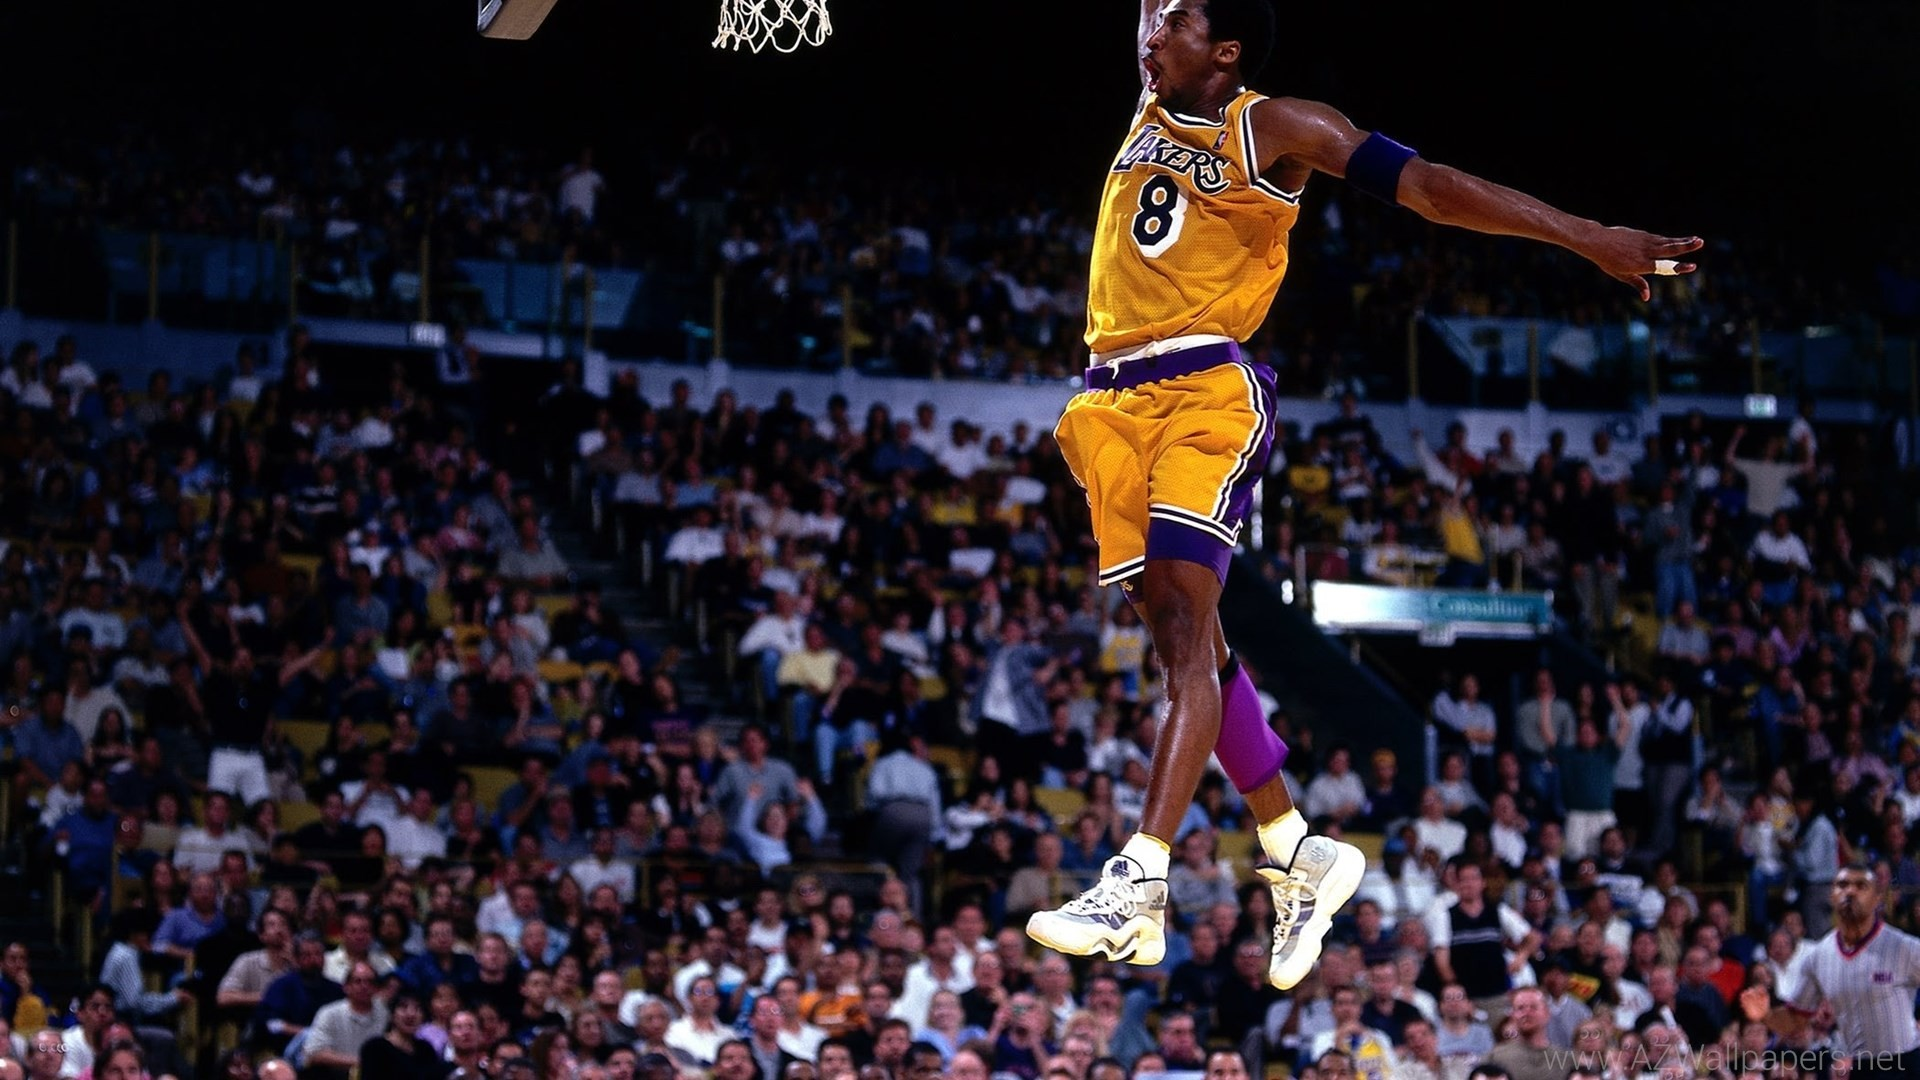 Lebron James Iphone Wallpaper Kobe Bryant Dunk Wallpaper 70 Images